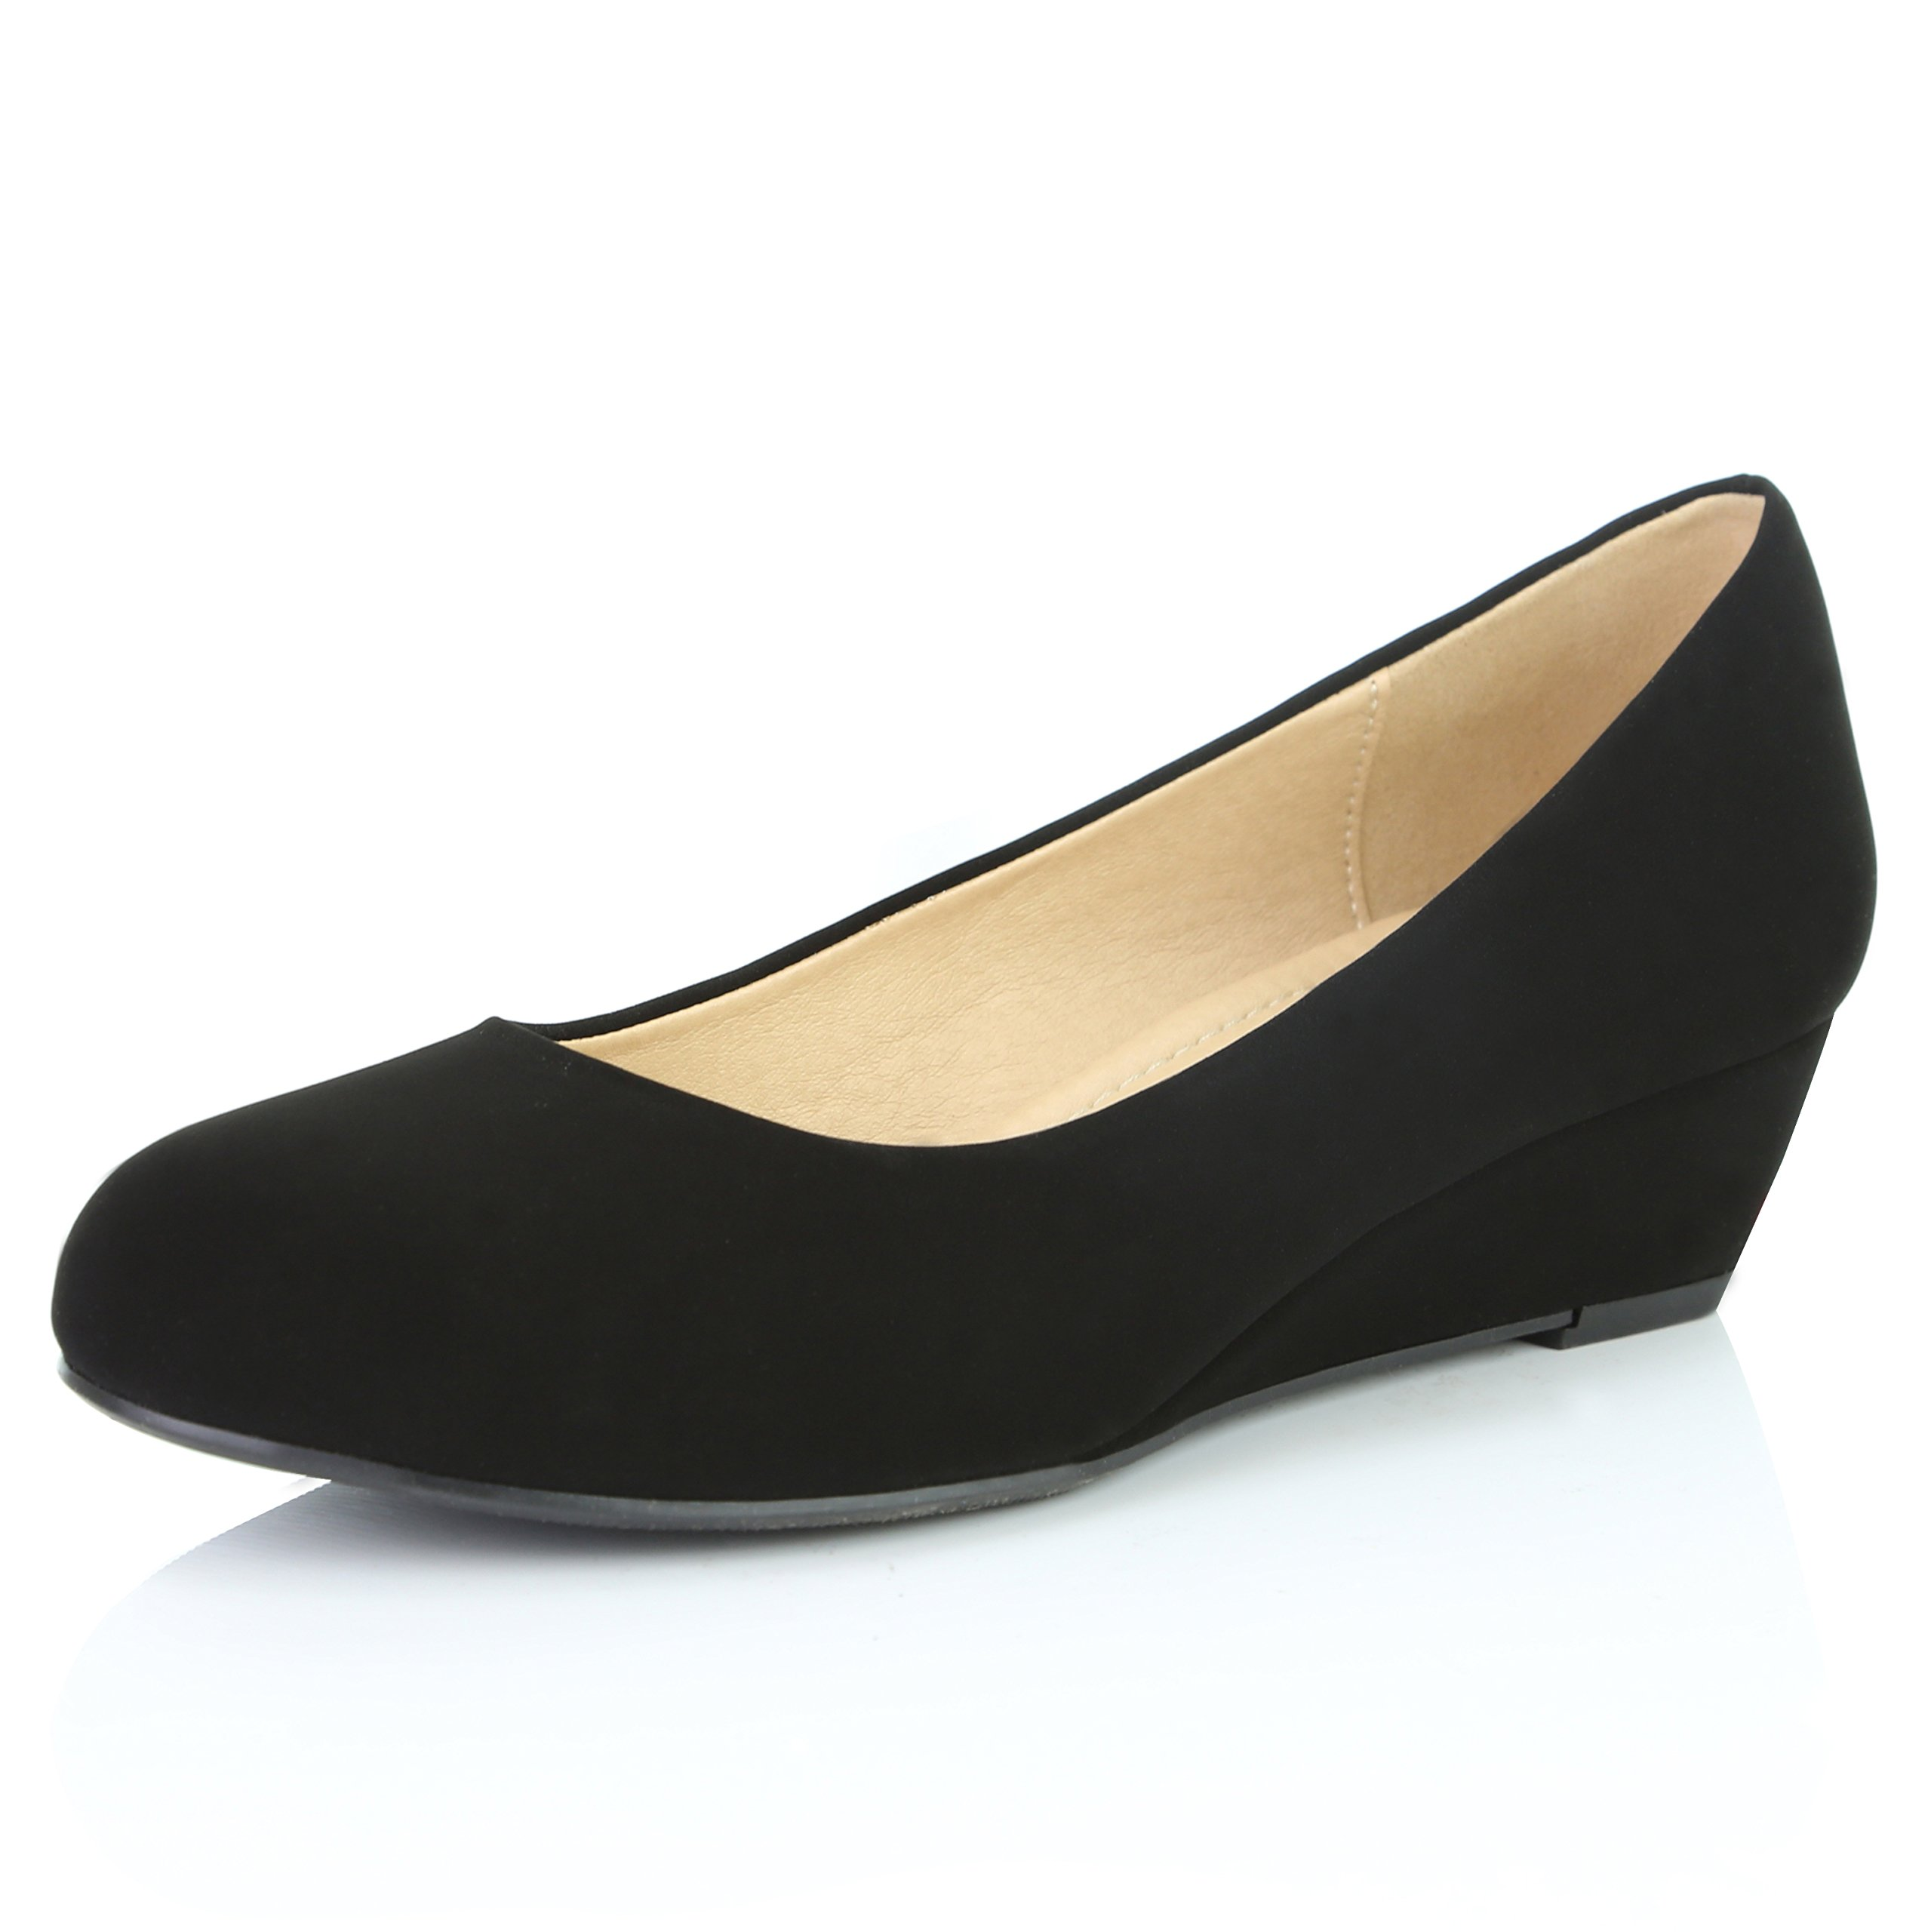 DailyShoes Women's Comfortable Fashion Low Heels Round Toe Wedge Pumps Shoes, Black Nubuck PU Leather, 8 B(M) US by DailyShoes (Image #1)